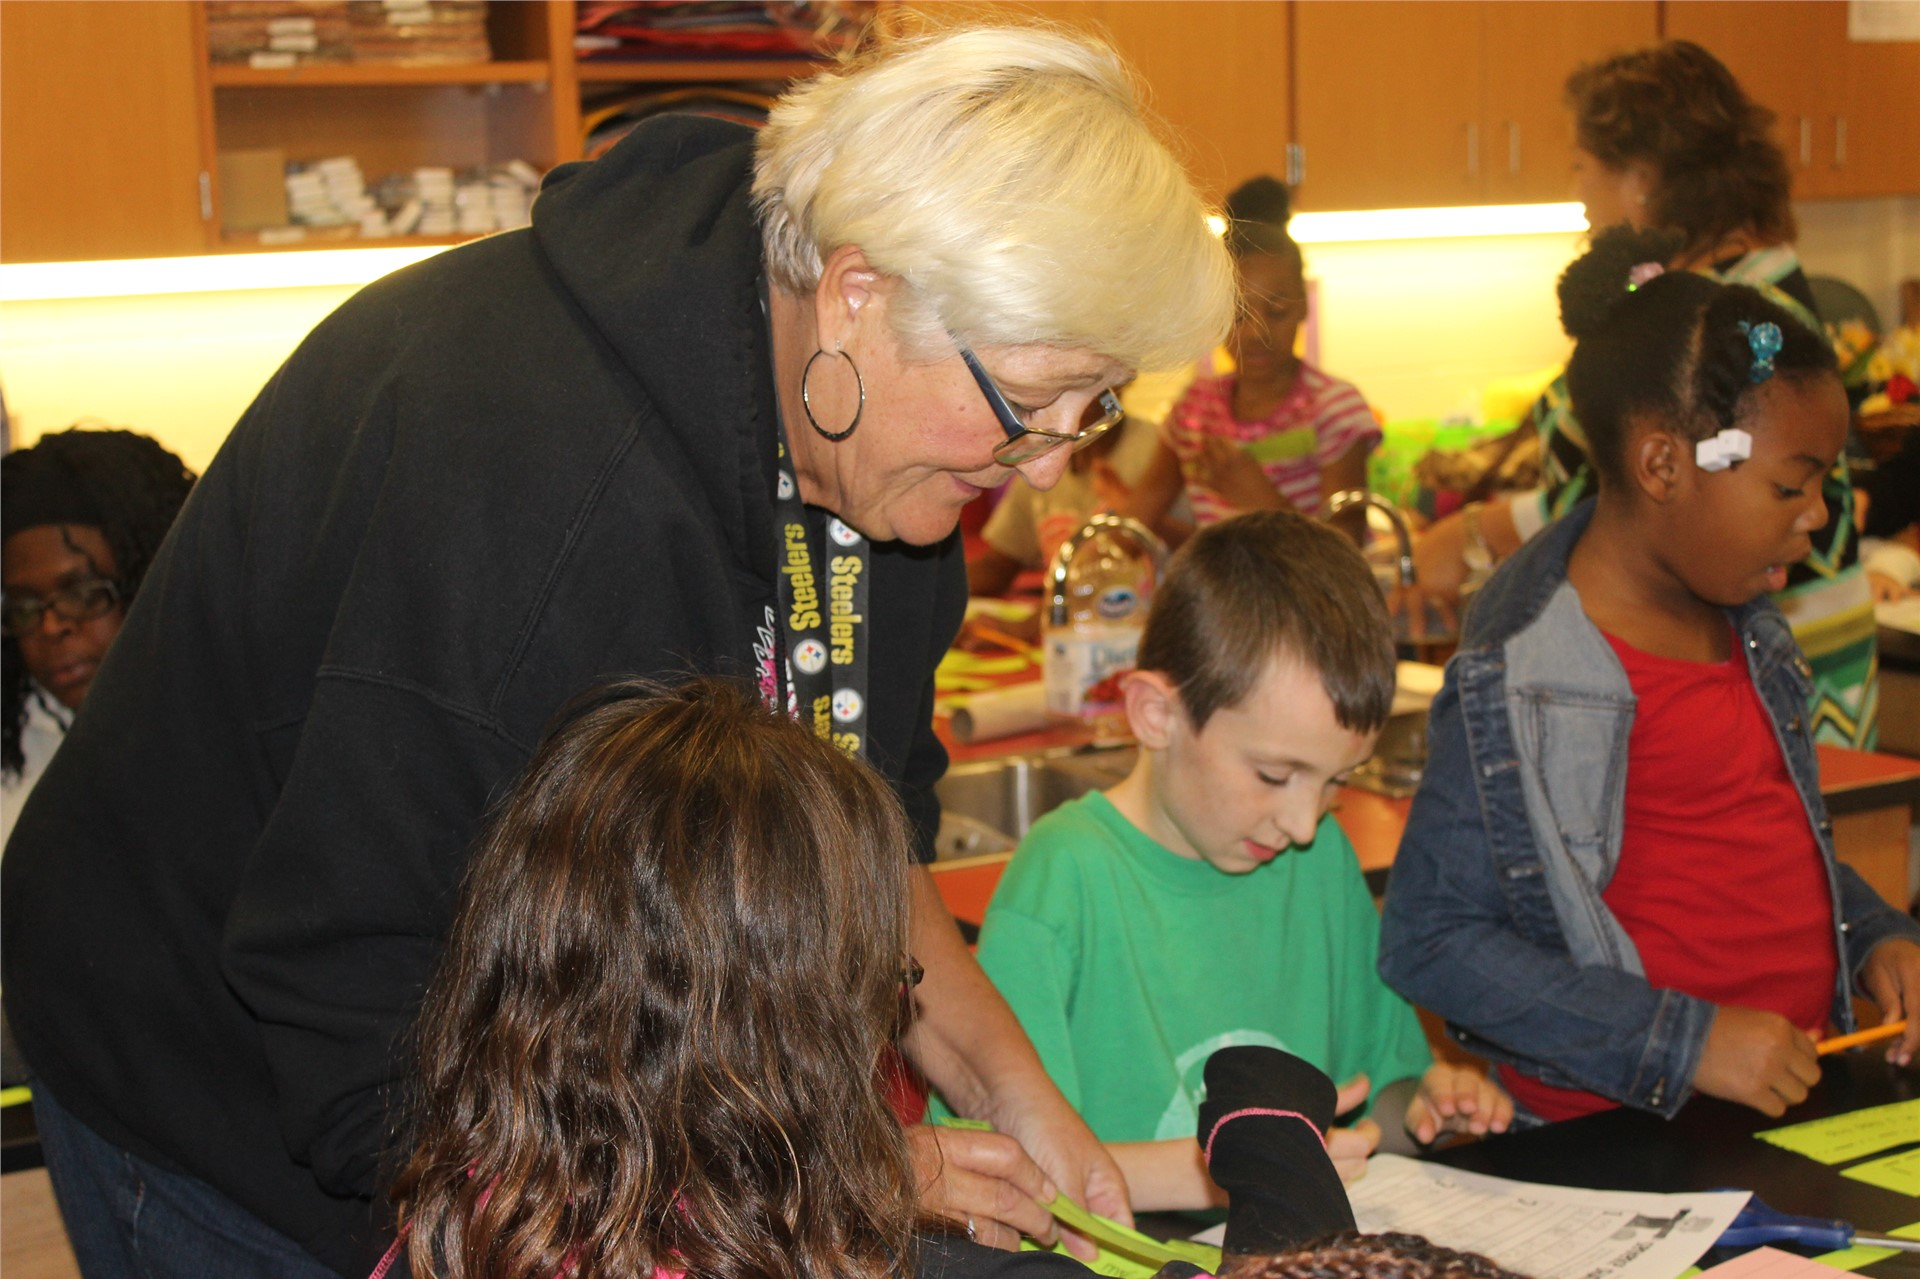 Retired Aliquippa teacher, Mrs. Postava, helped her grandchildren with the activities.